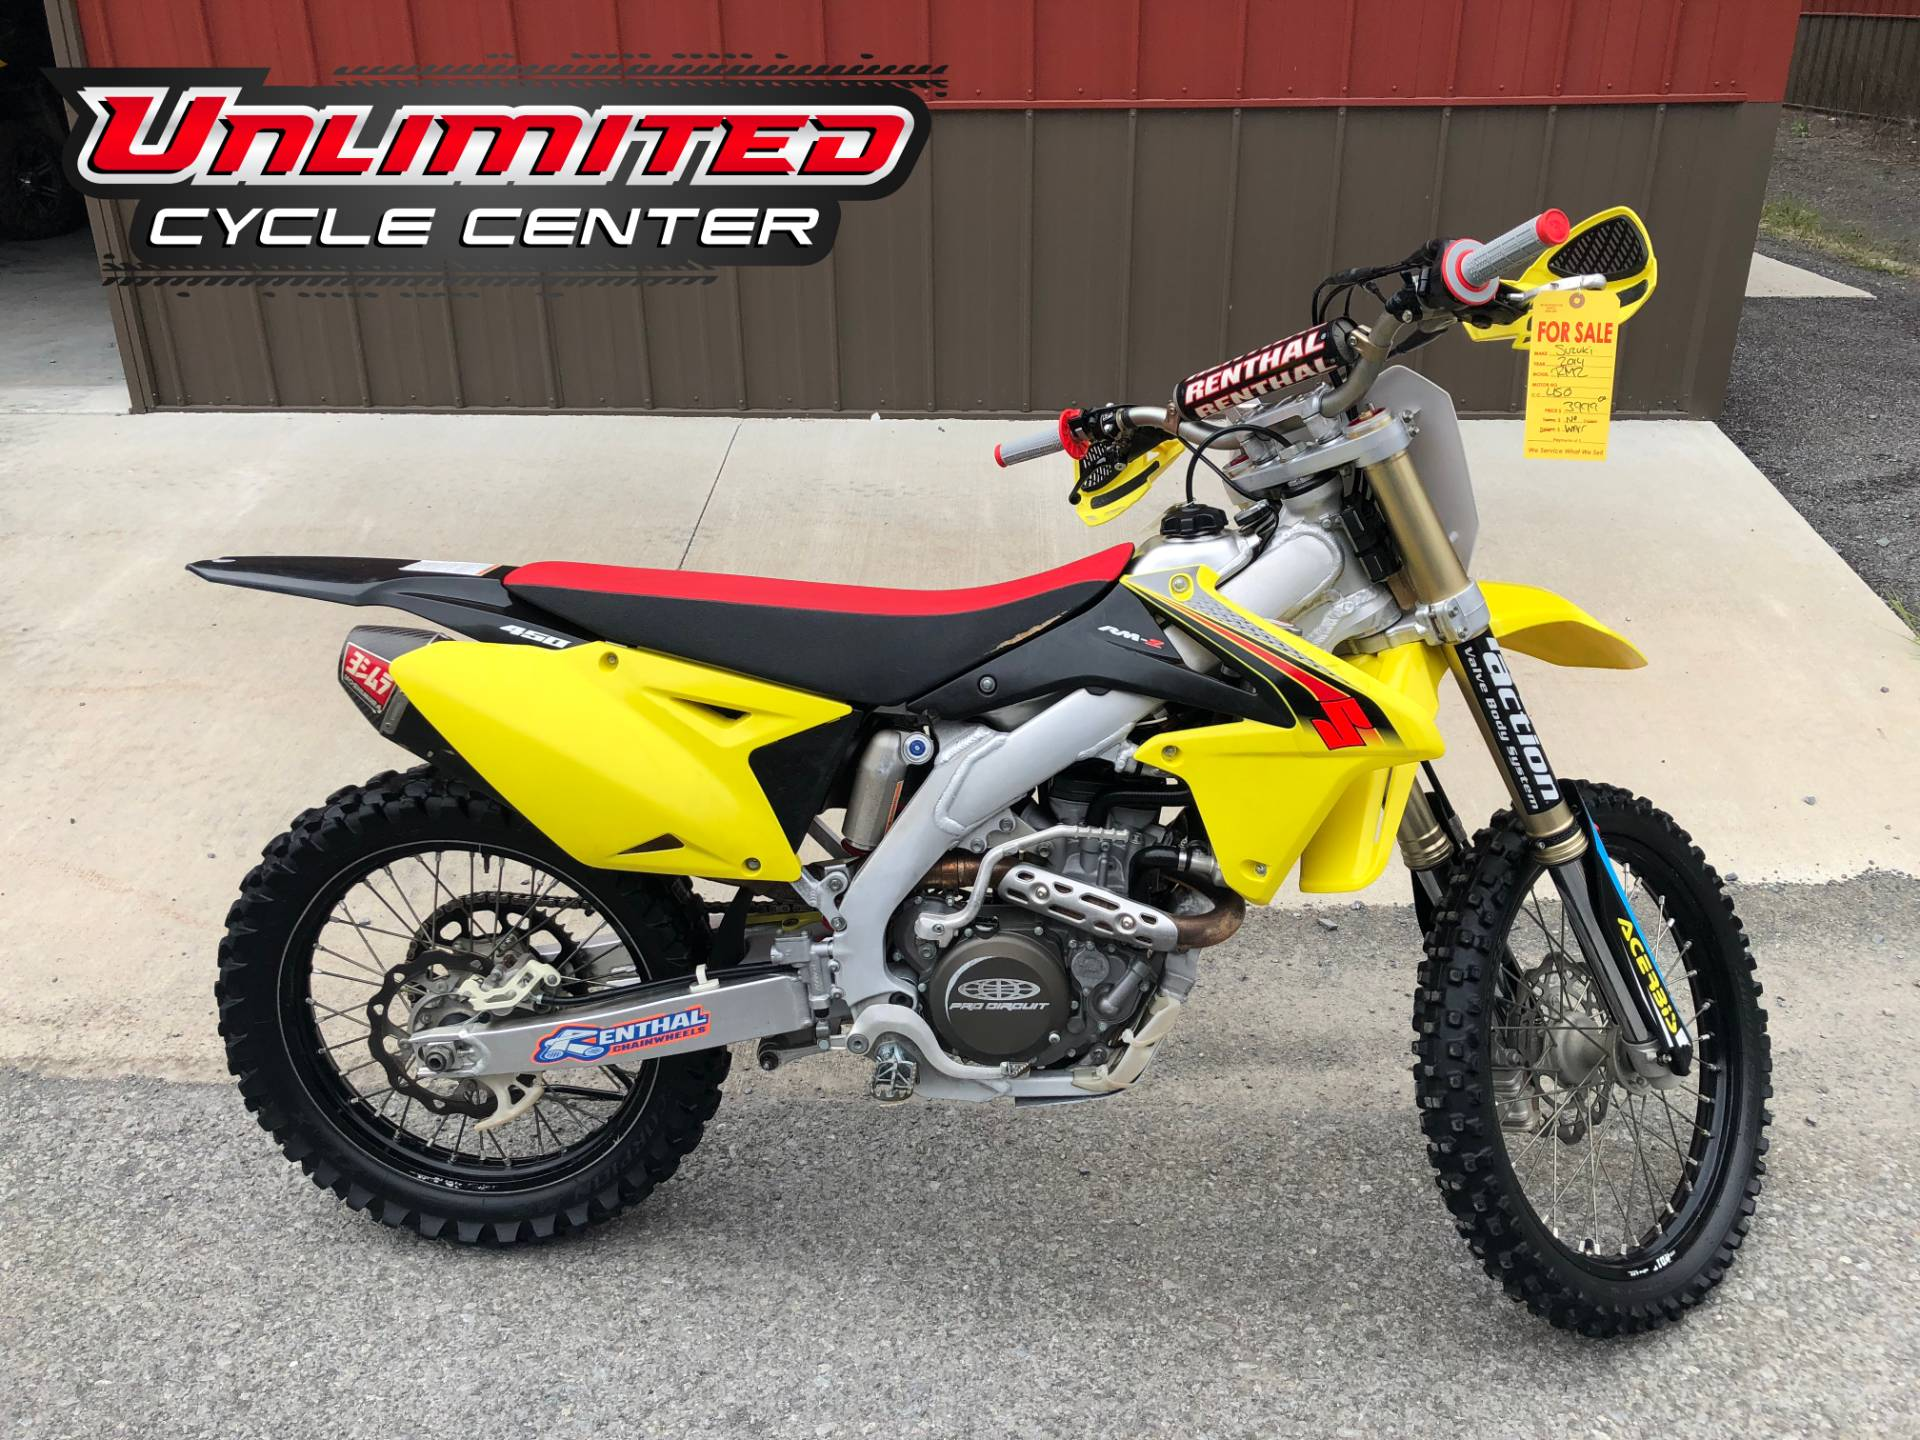 2014 Suzuki RM-Z450 in Tyrone, Pennsylvania - Photo 1